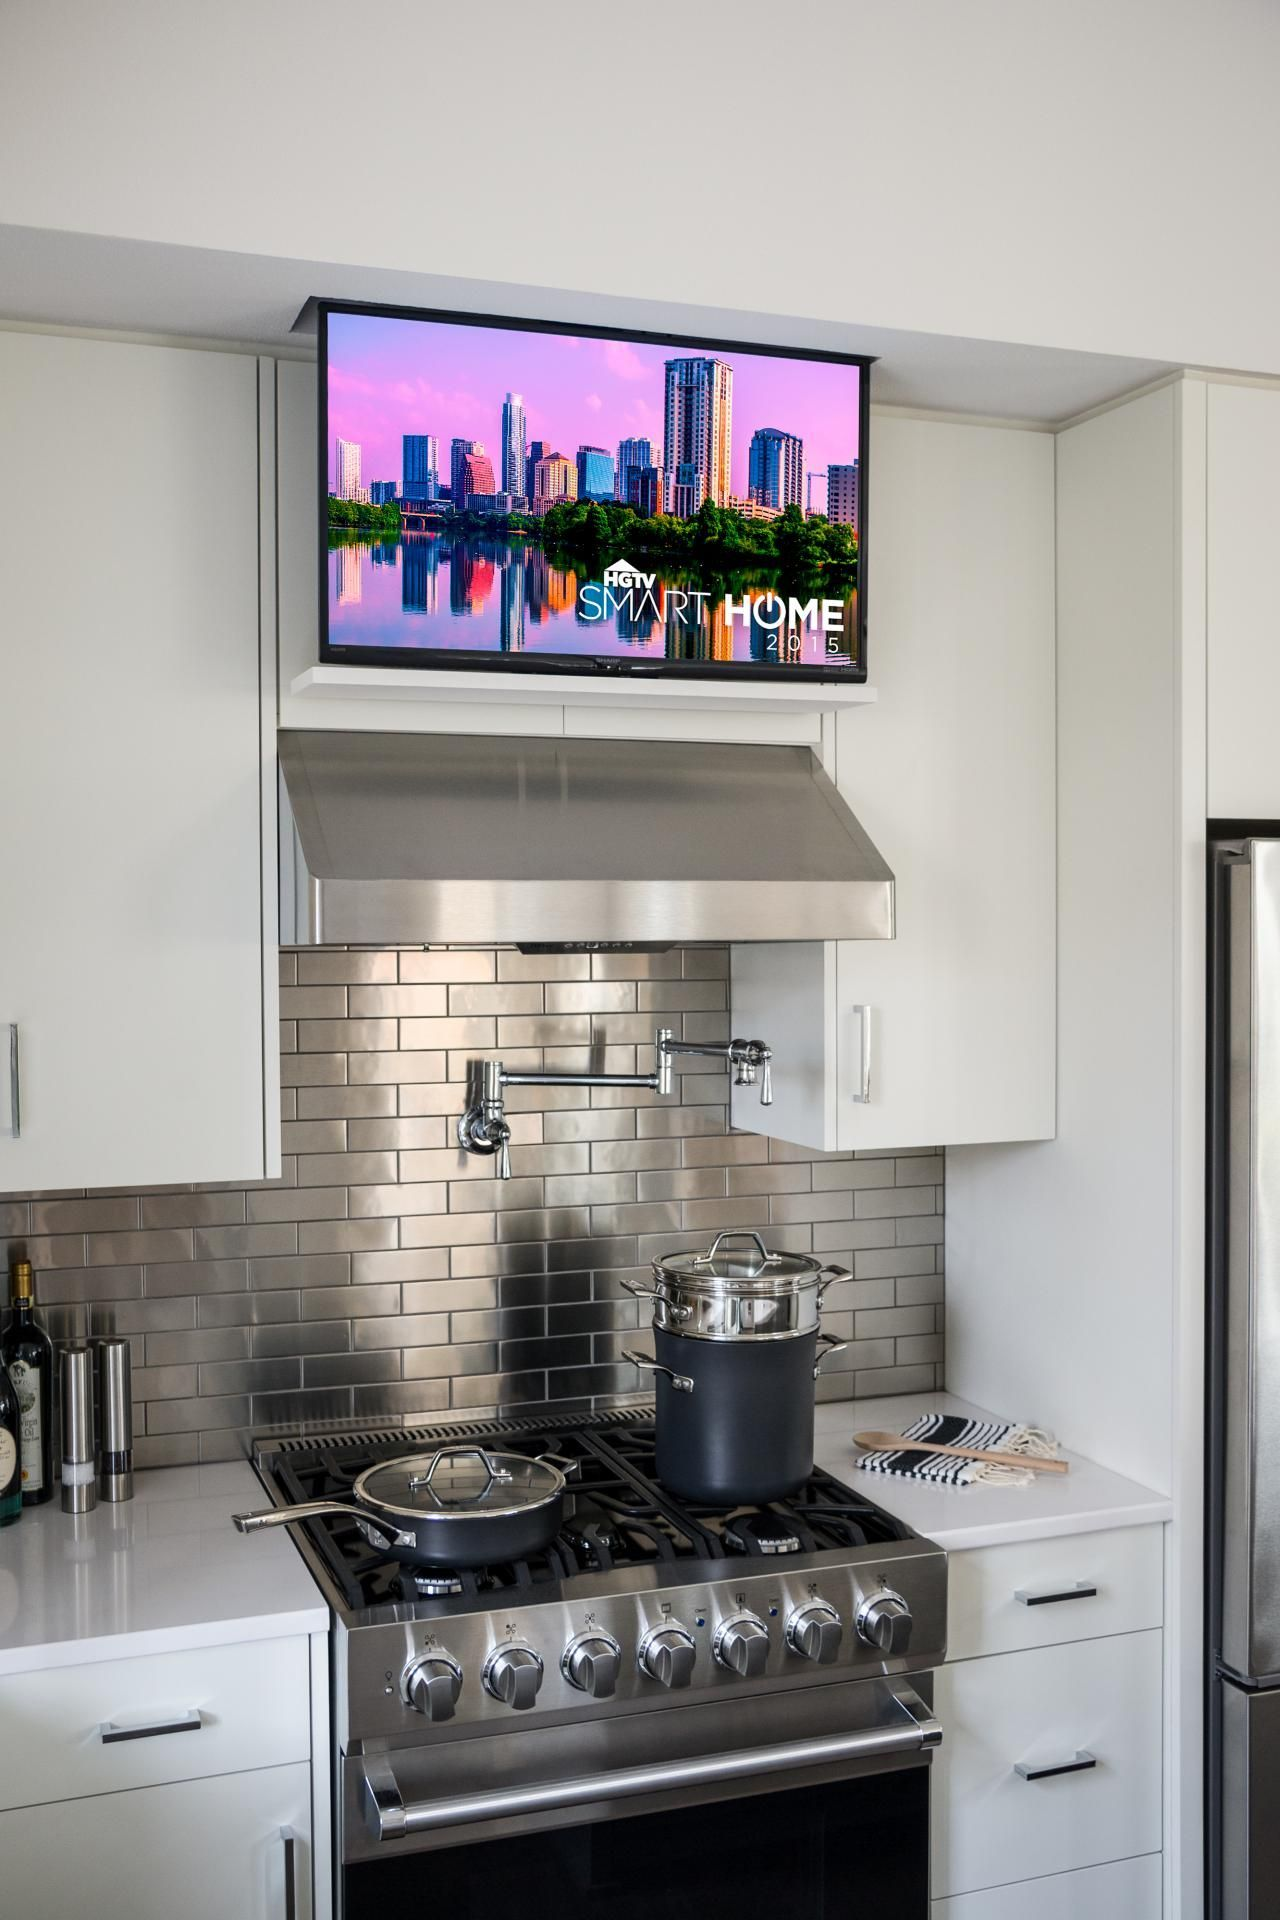 Smart Features From Hgtv Smart Home 2015 Hgtv Smarthomegadgets Tv In Kitchen Smart Kitchen Smart Home